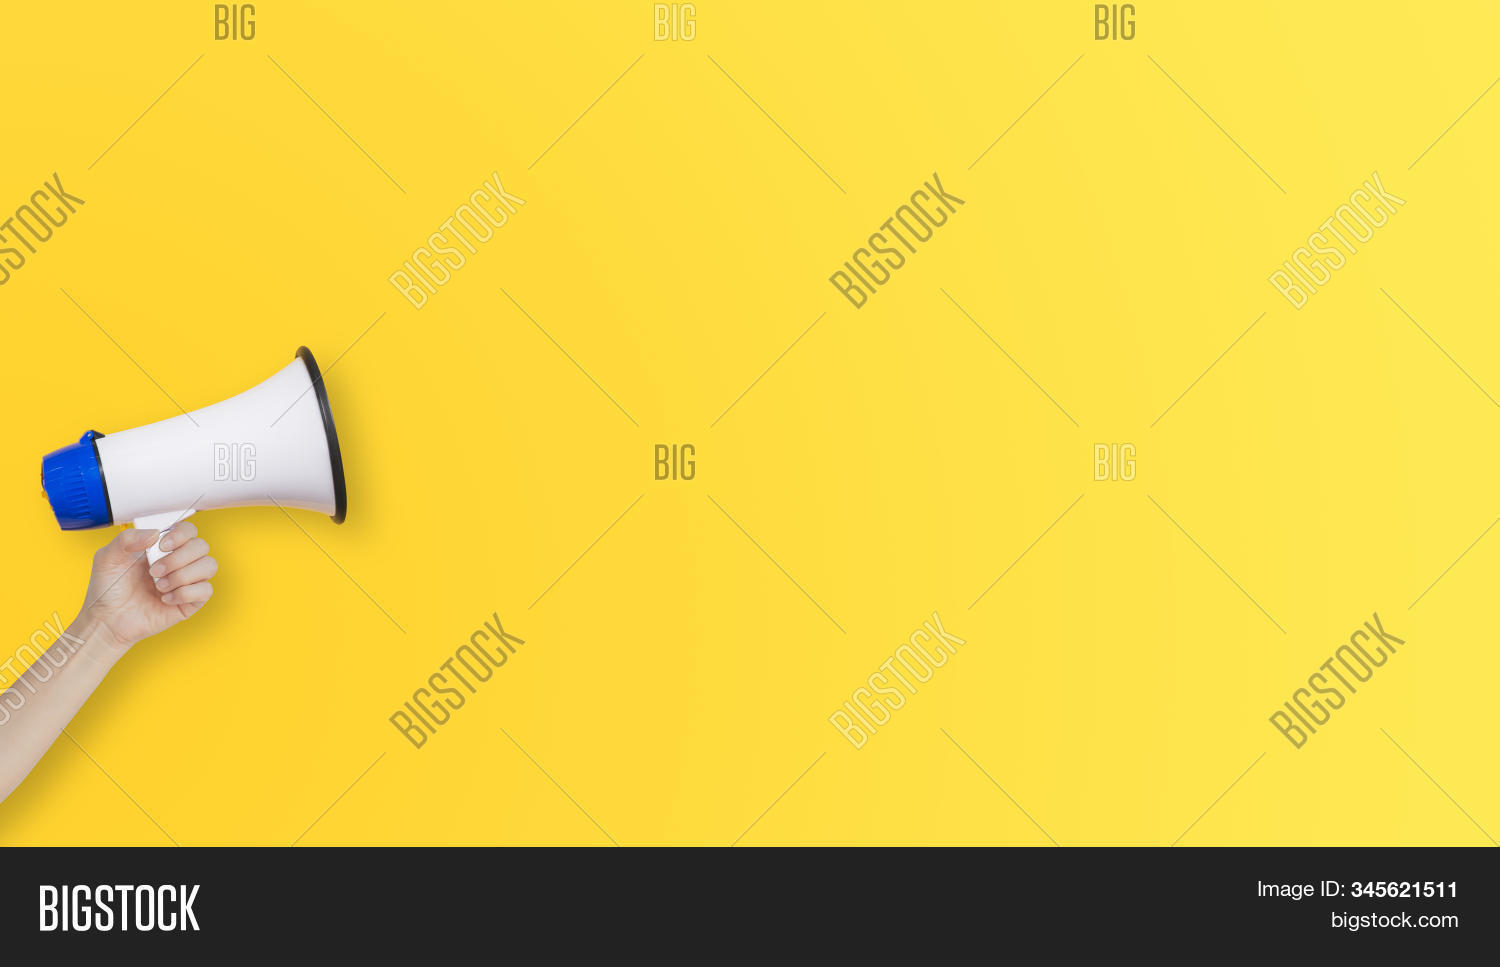 Business Communication and Marketing Concept : Female hand holding megaphone for announcement and advertisement.